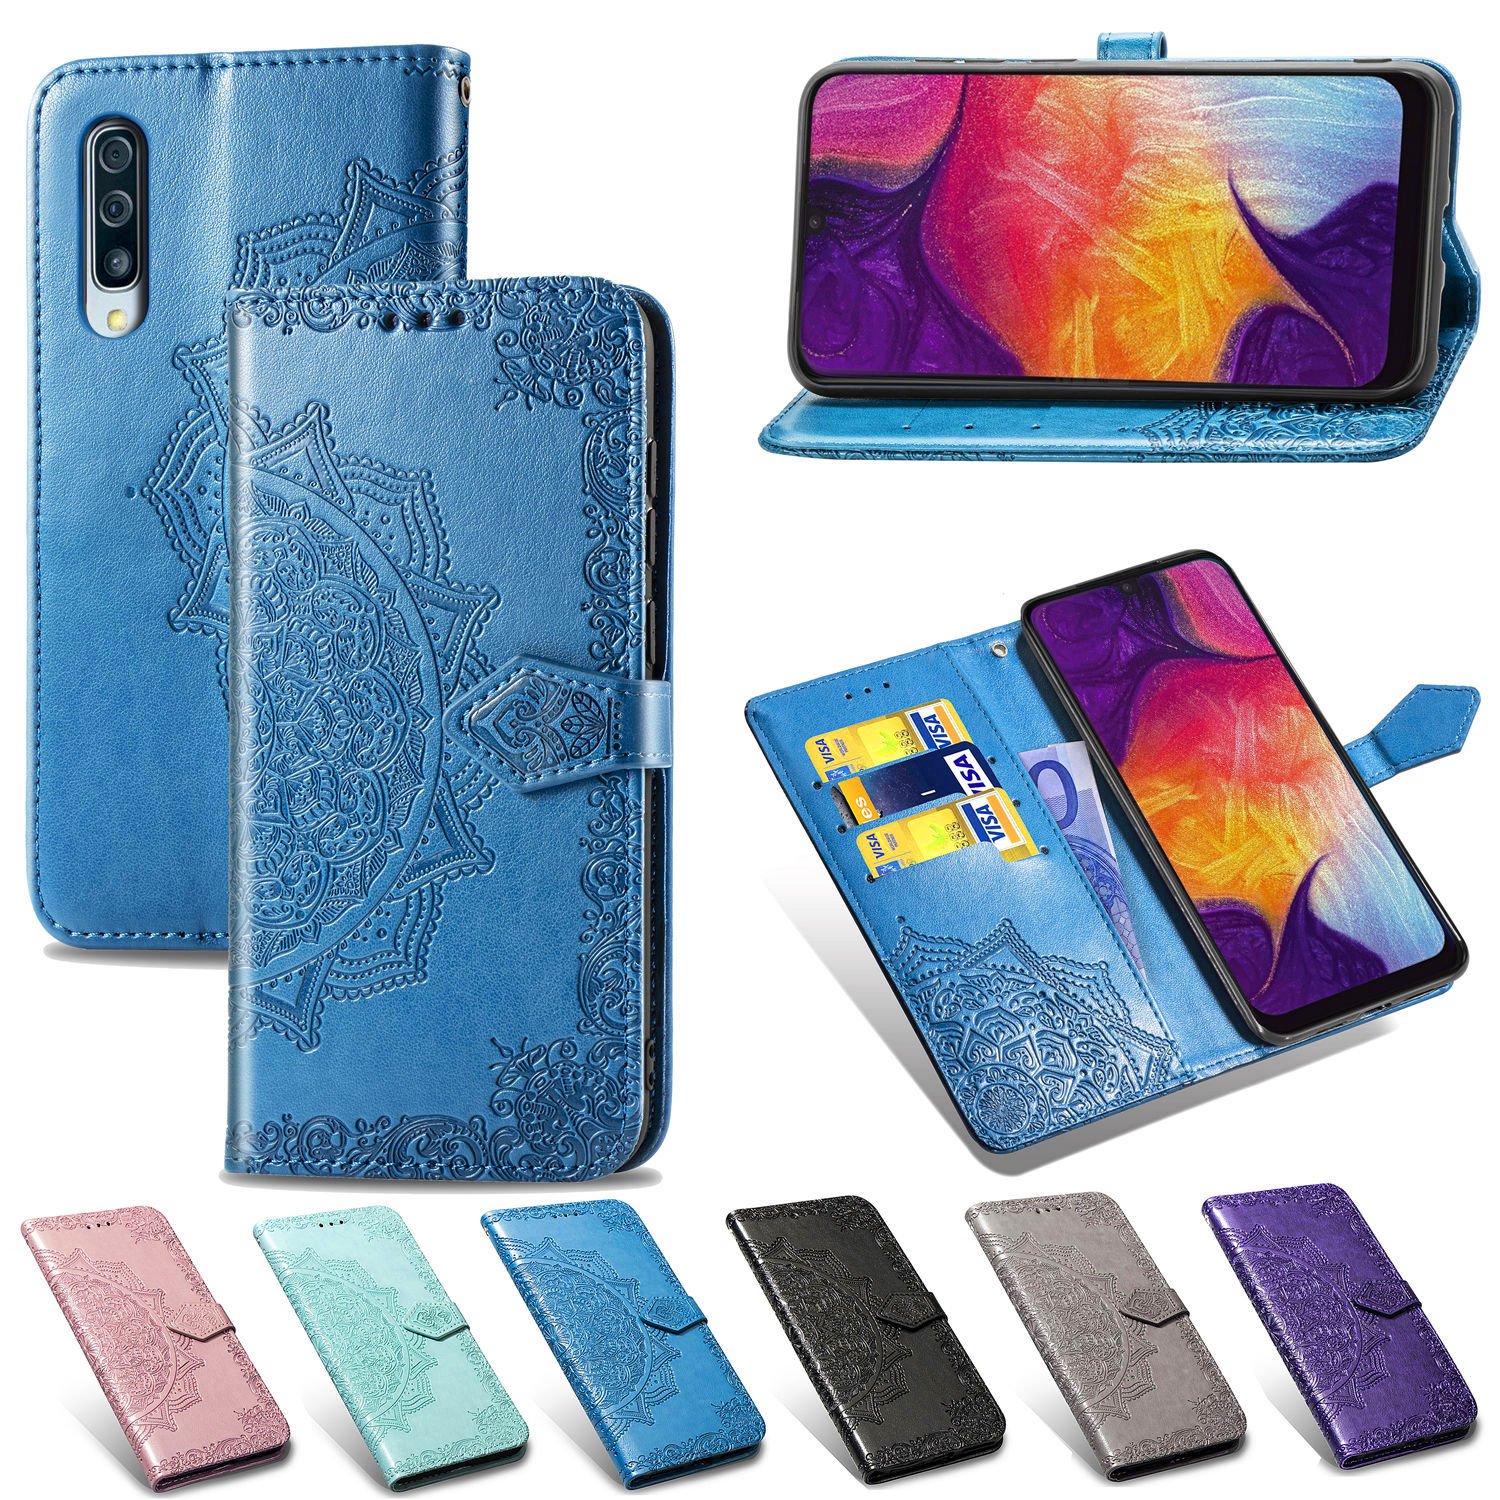 Flip Wallet Case For Samsung Galaxy A10 A30 A40 A50 A70 Leather Flip Phone Cover